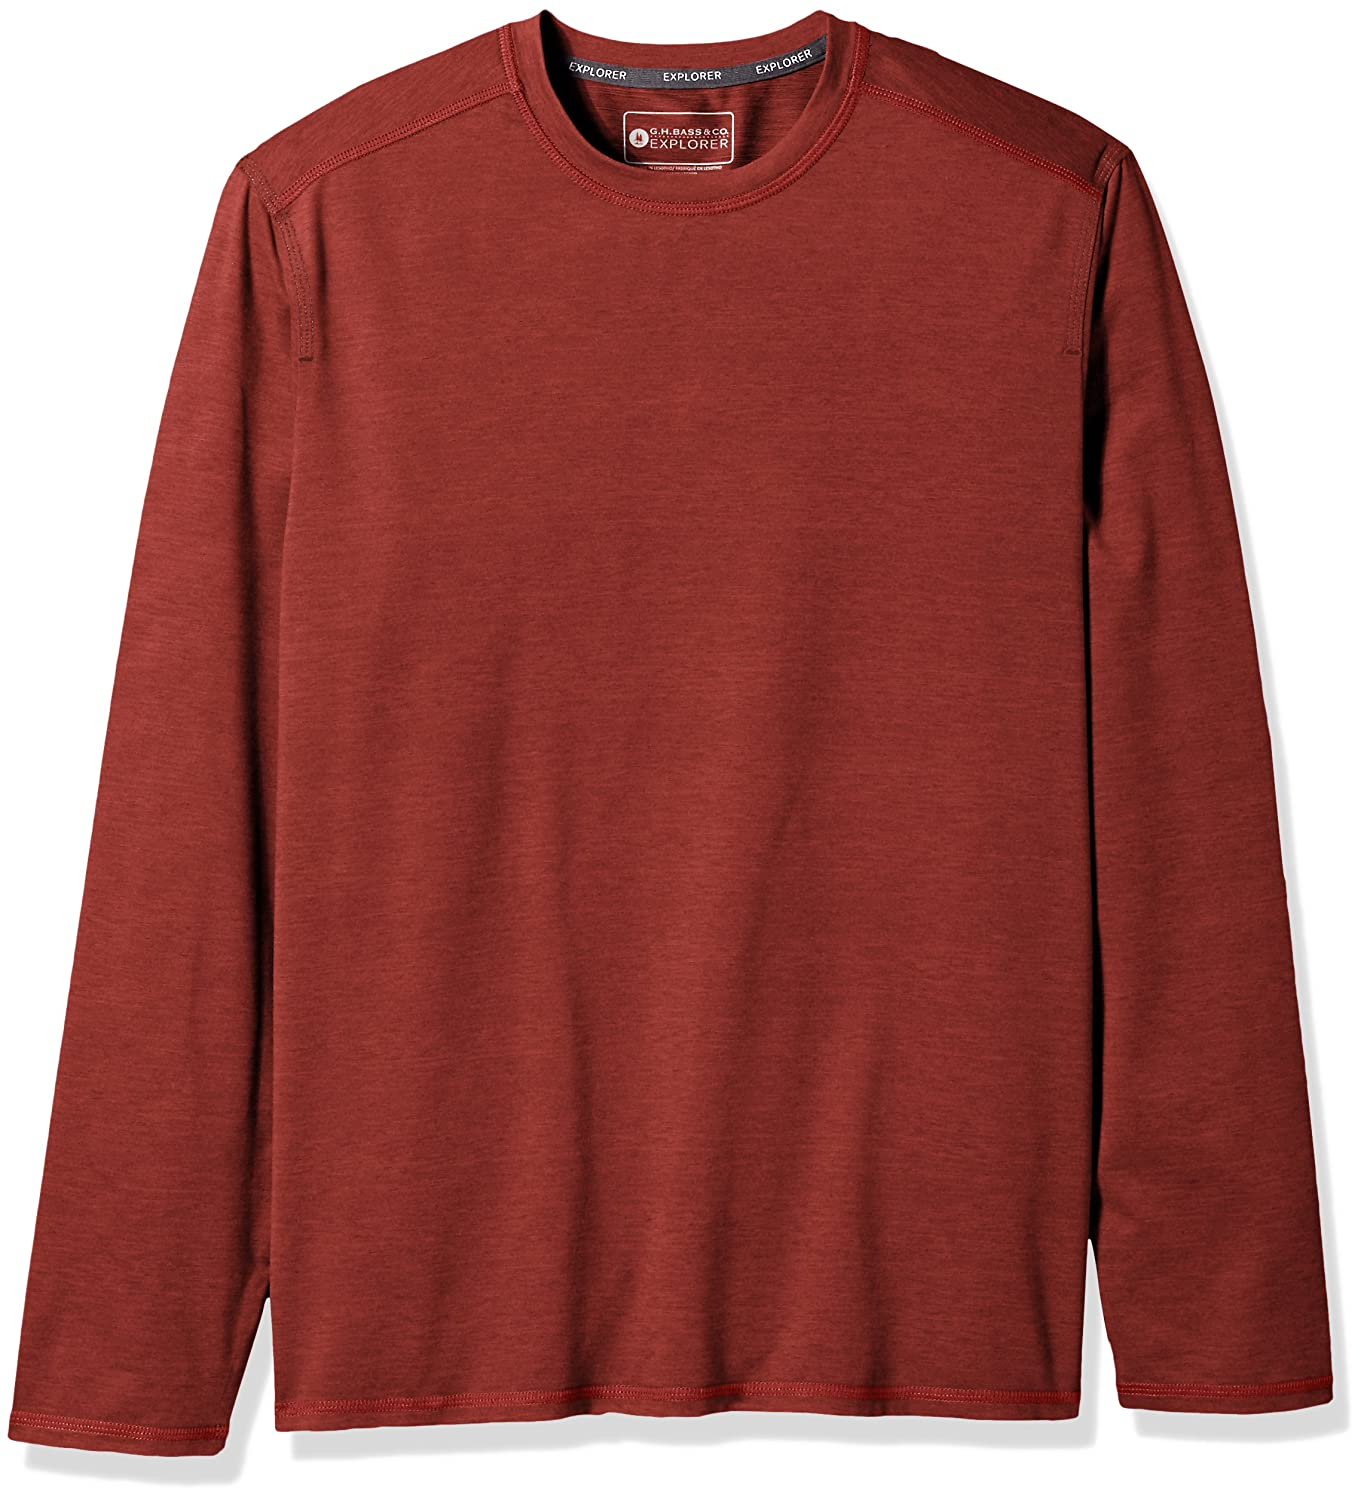 G.H. Bass & Co. Mens Performance Space Dyed Long Sleeve Jersey Crew Arrow Men's Tops 5273270